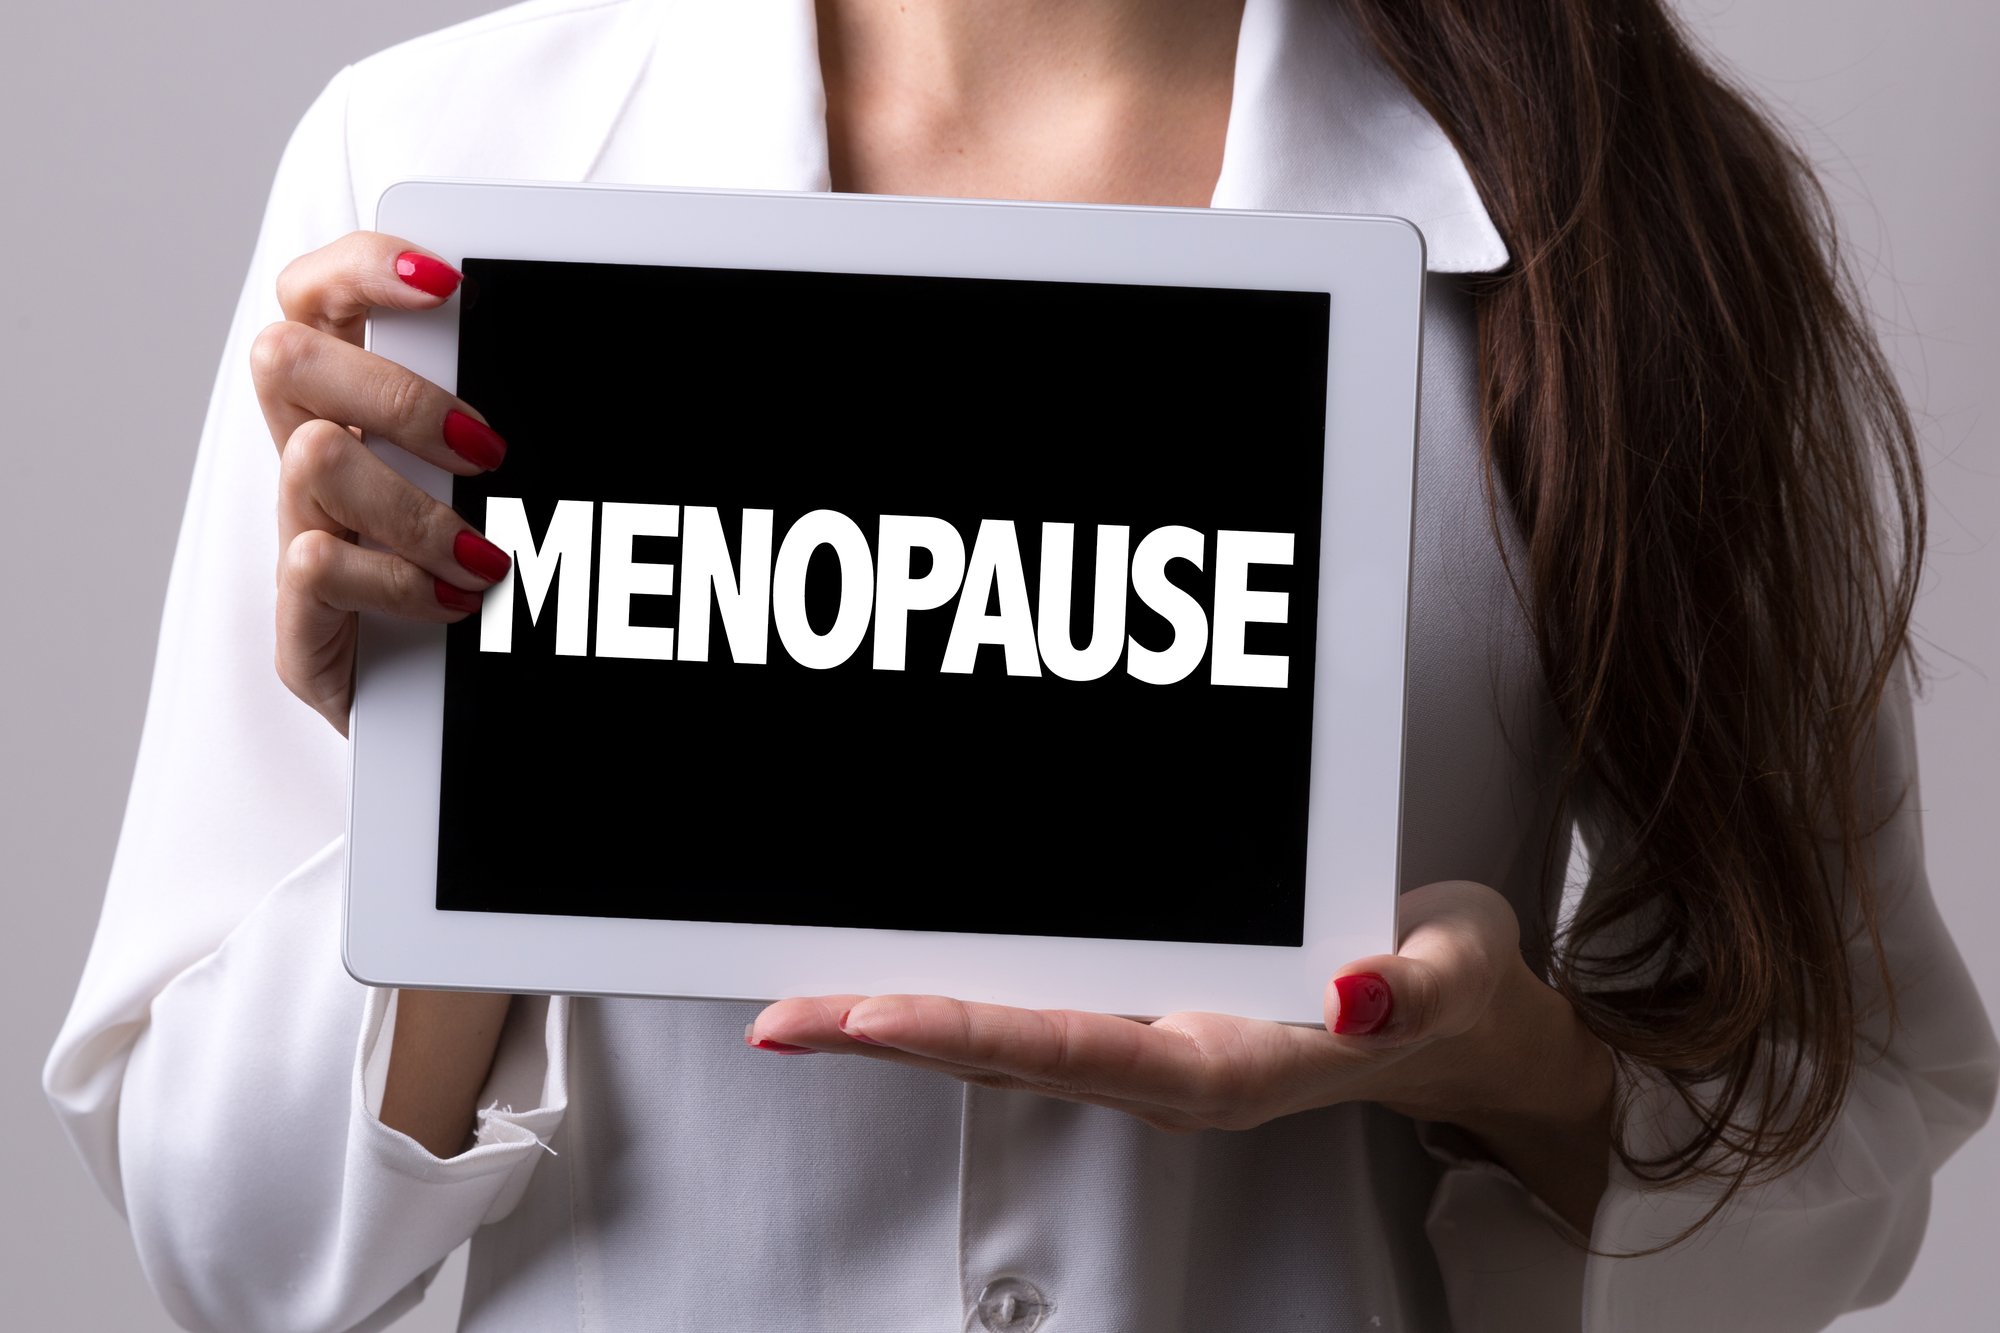 Menopause Champions and Sponsors